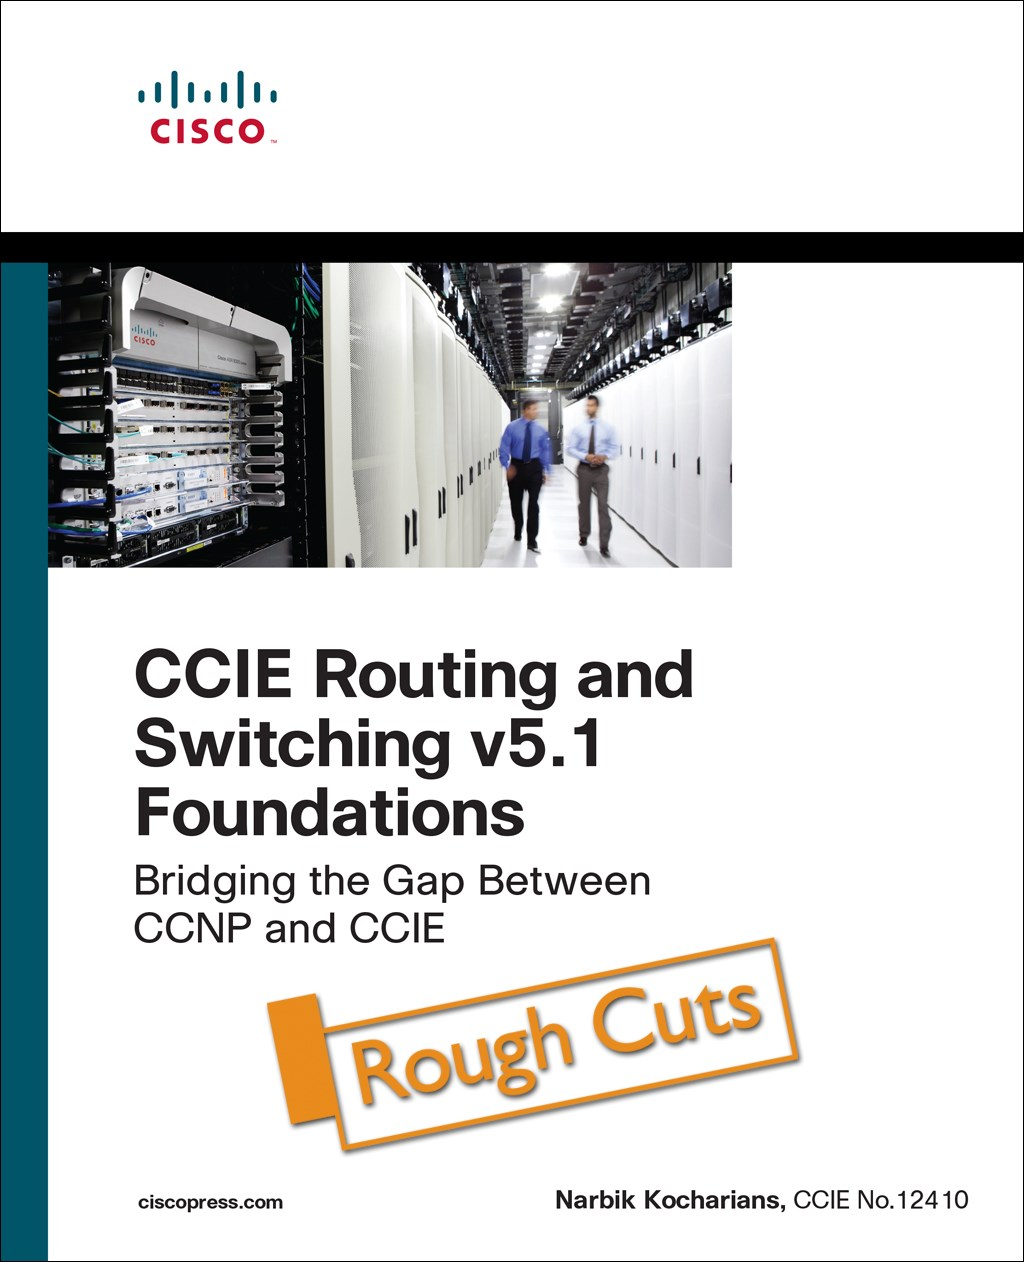 CCIE Routing and Switching v5.1 Foundations: Bridging the Gap Between CCNP and CCIE, Rough Cuts